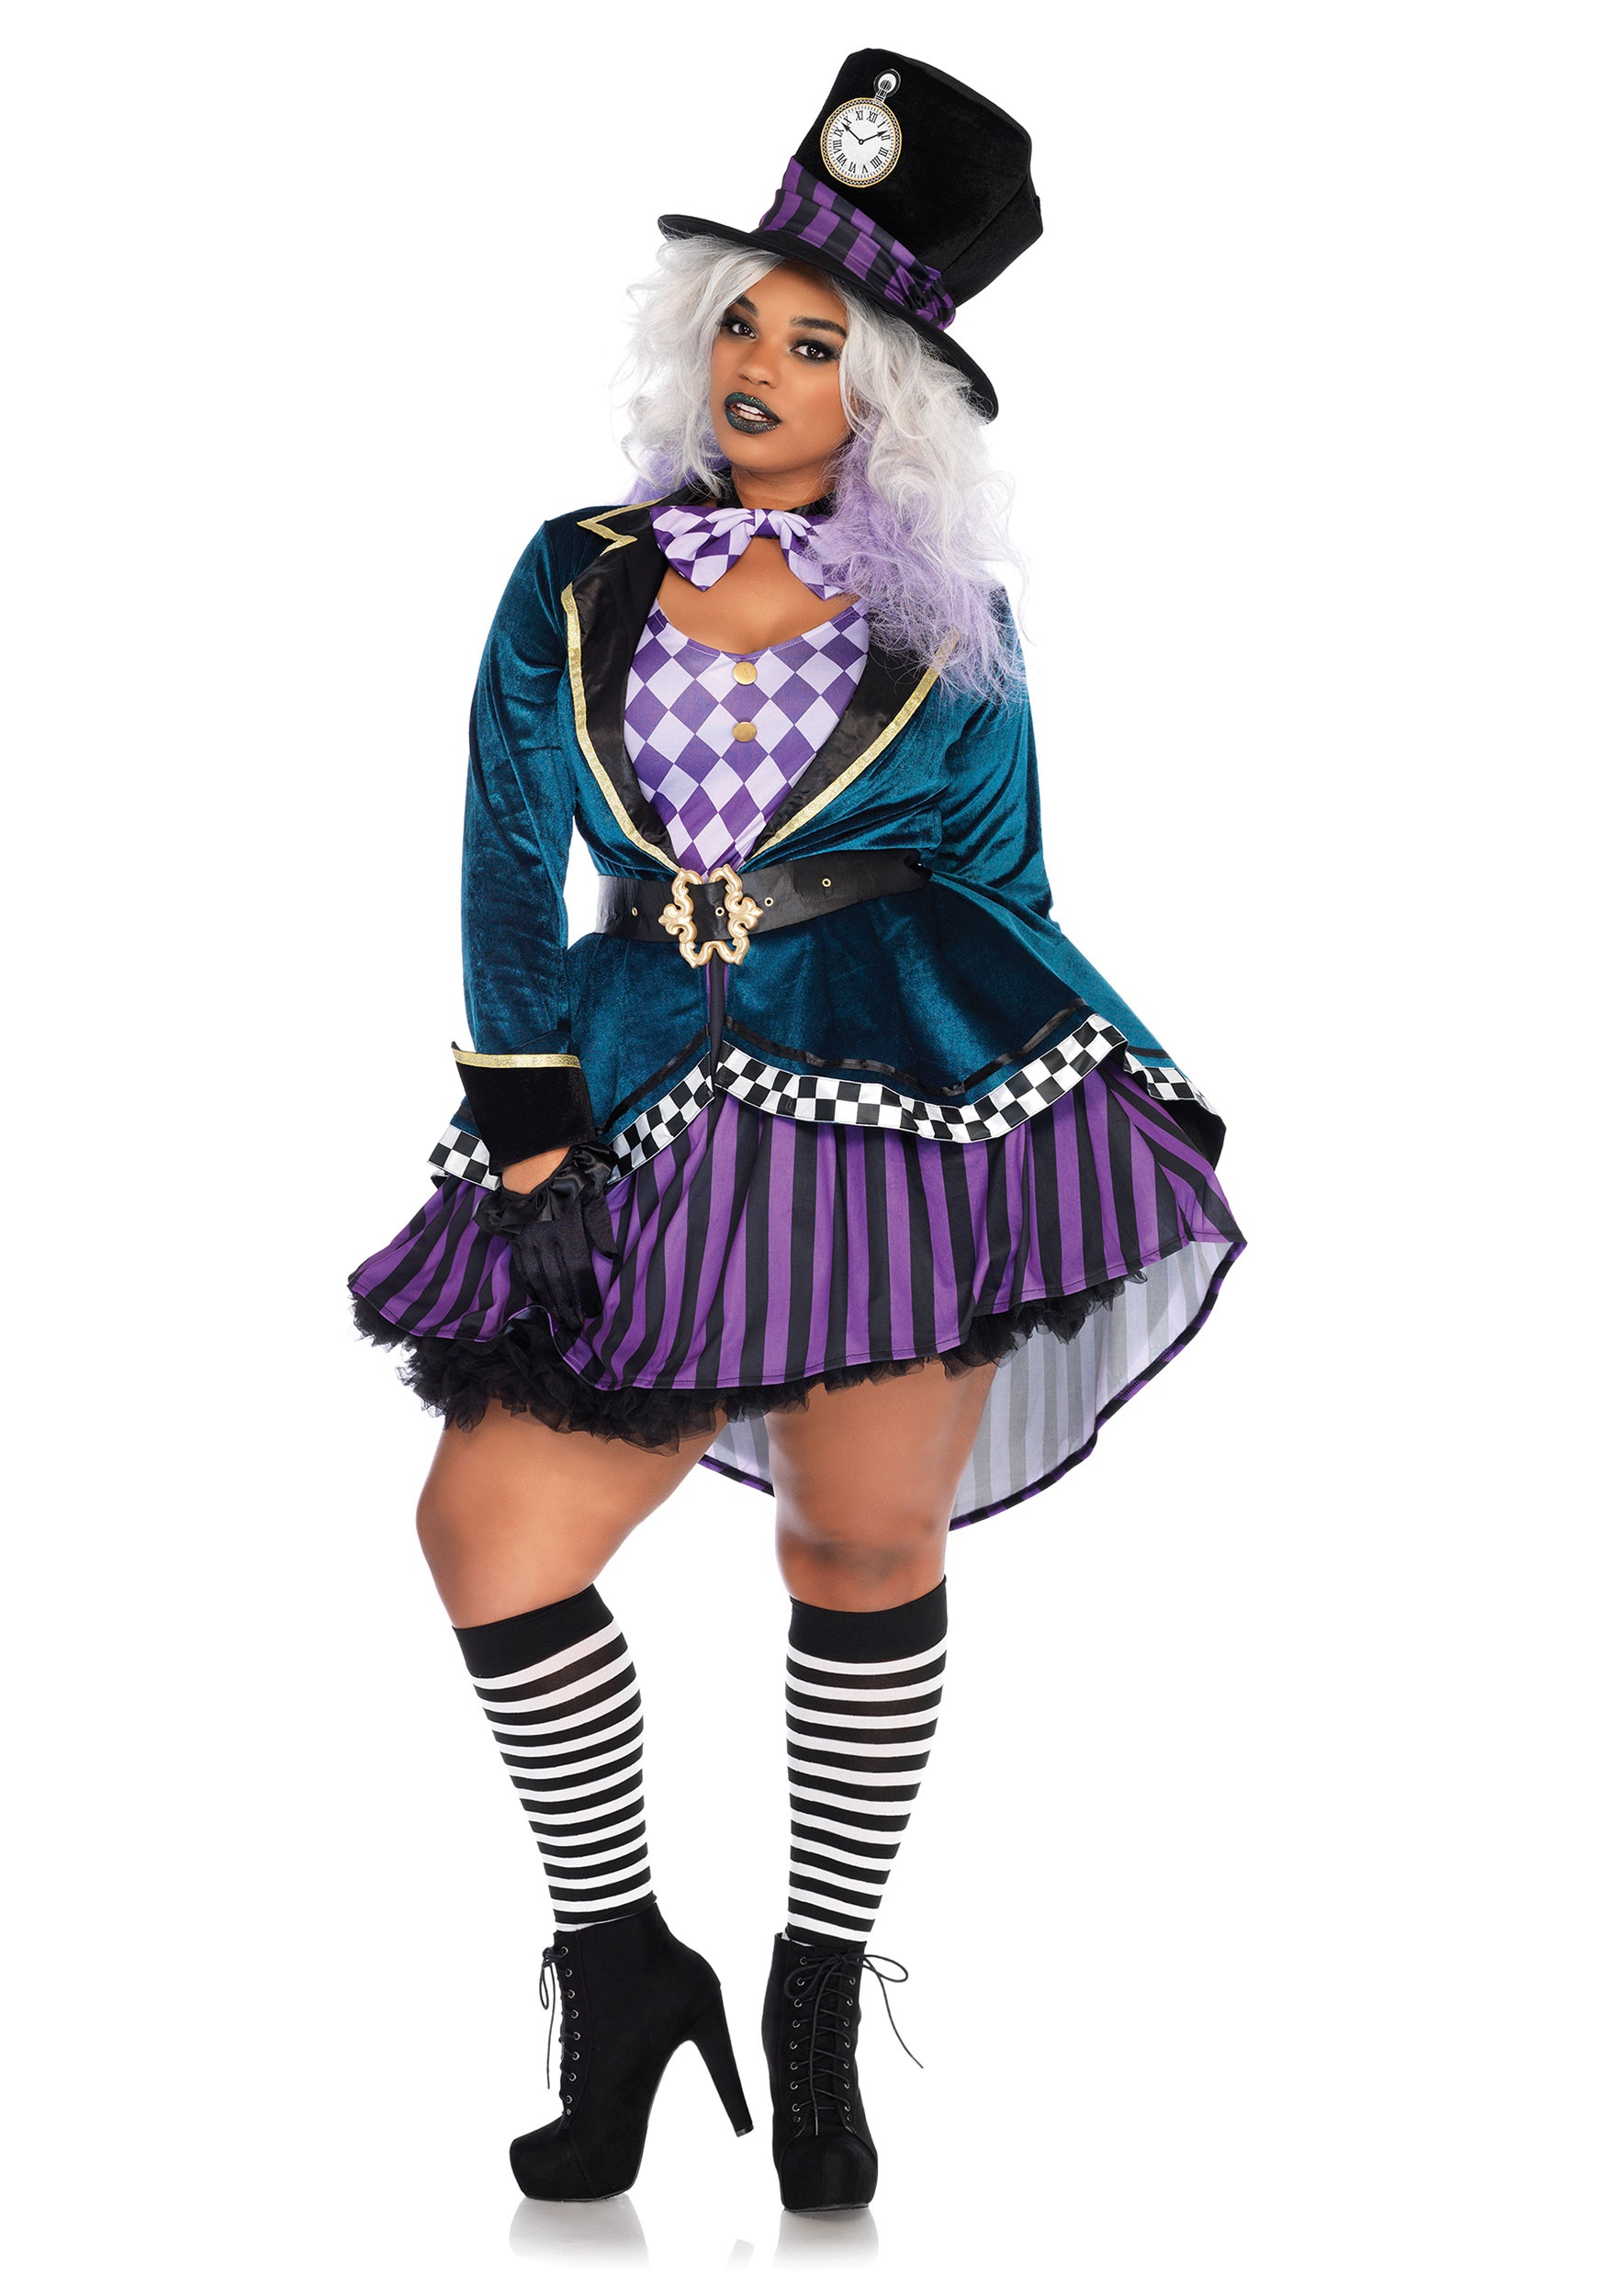 Womenu0027s Delightful Mad Hatter Plus Size Costume  sc 1 st  Fun.com : costume plus size women  - Germanpascual.Com